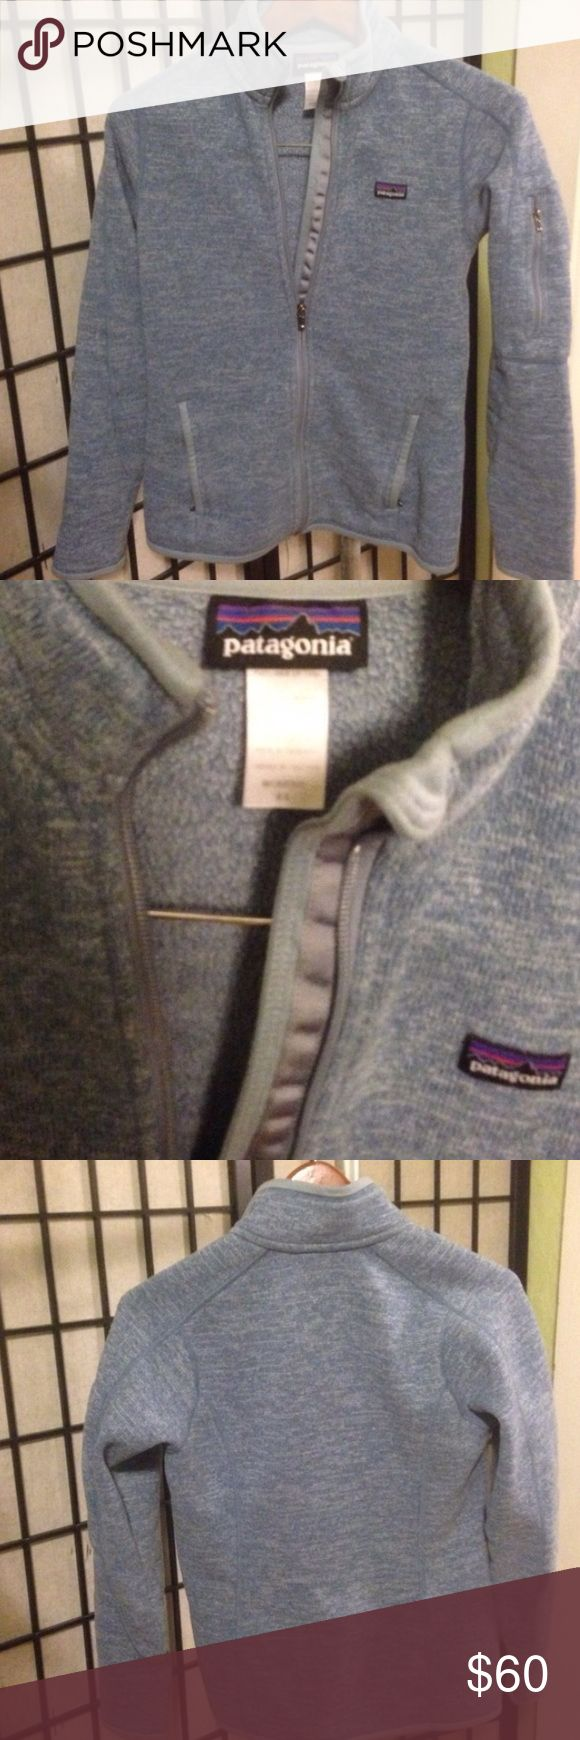 Patagonia Better Sweater Light blue grey Patagonia better sweater. Size xs. Bought this from another posher and love it but a tiny bit small, I was looking for it to be a little bigger so hoping to resell. Very minimal signs of wear. Patagonia Jackets & Coats